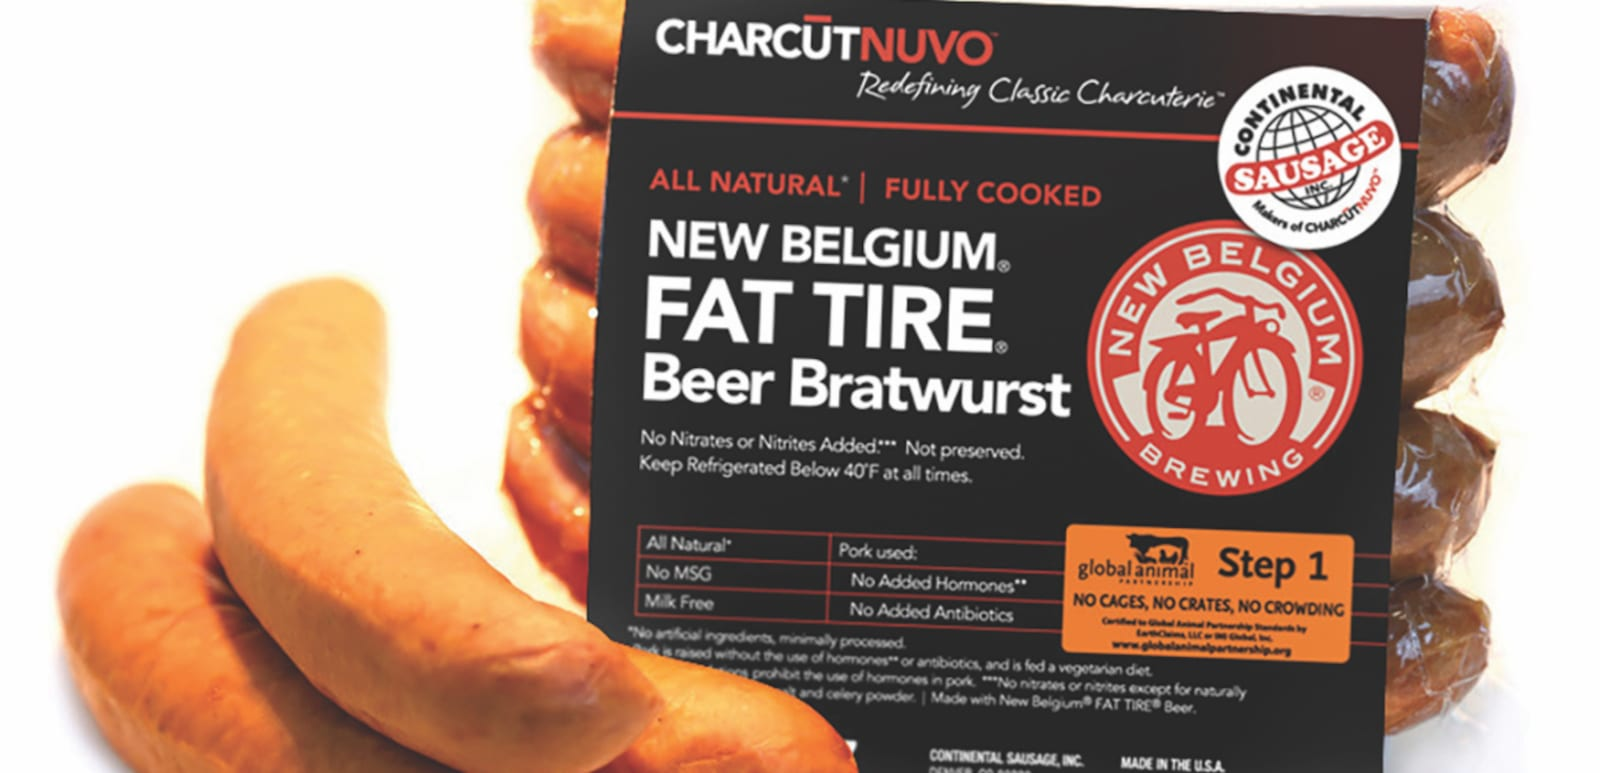 Continental Sausage Charcutnuvo New Belgium Fat Tire Beer Bratwurst